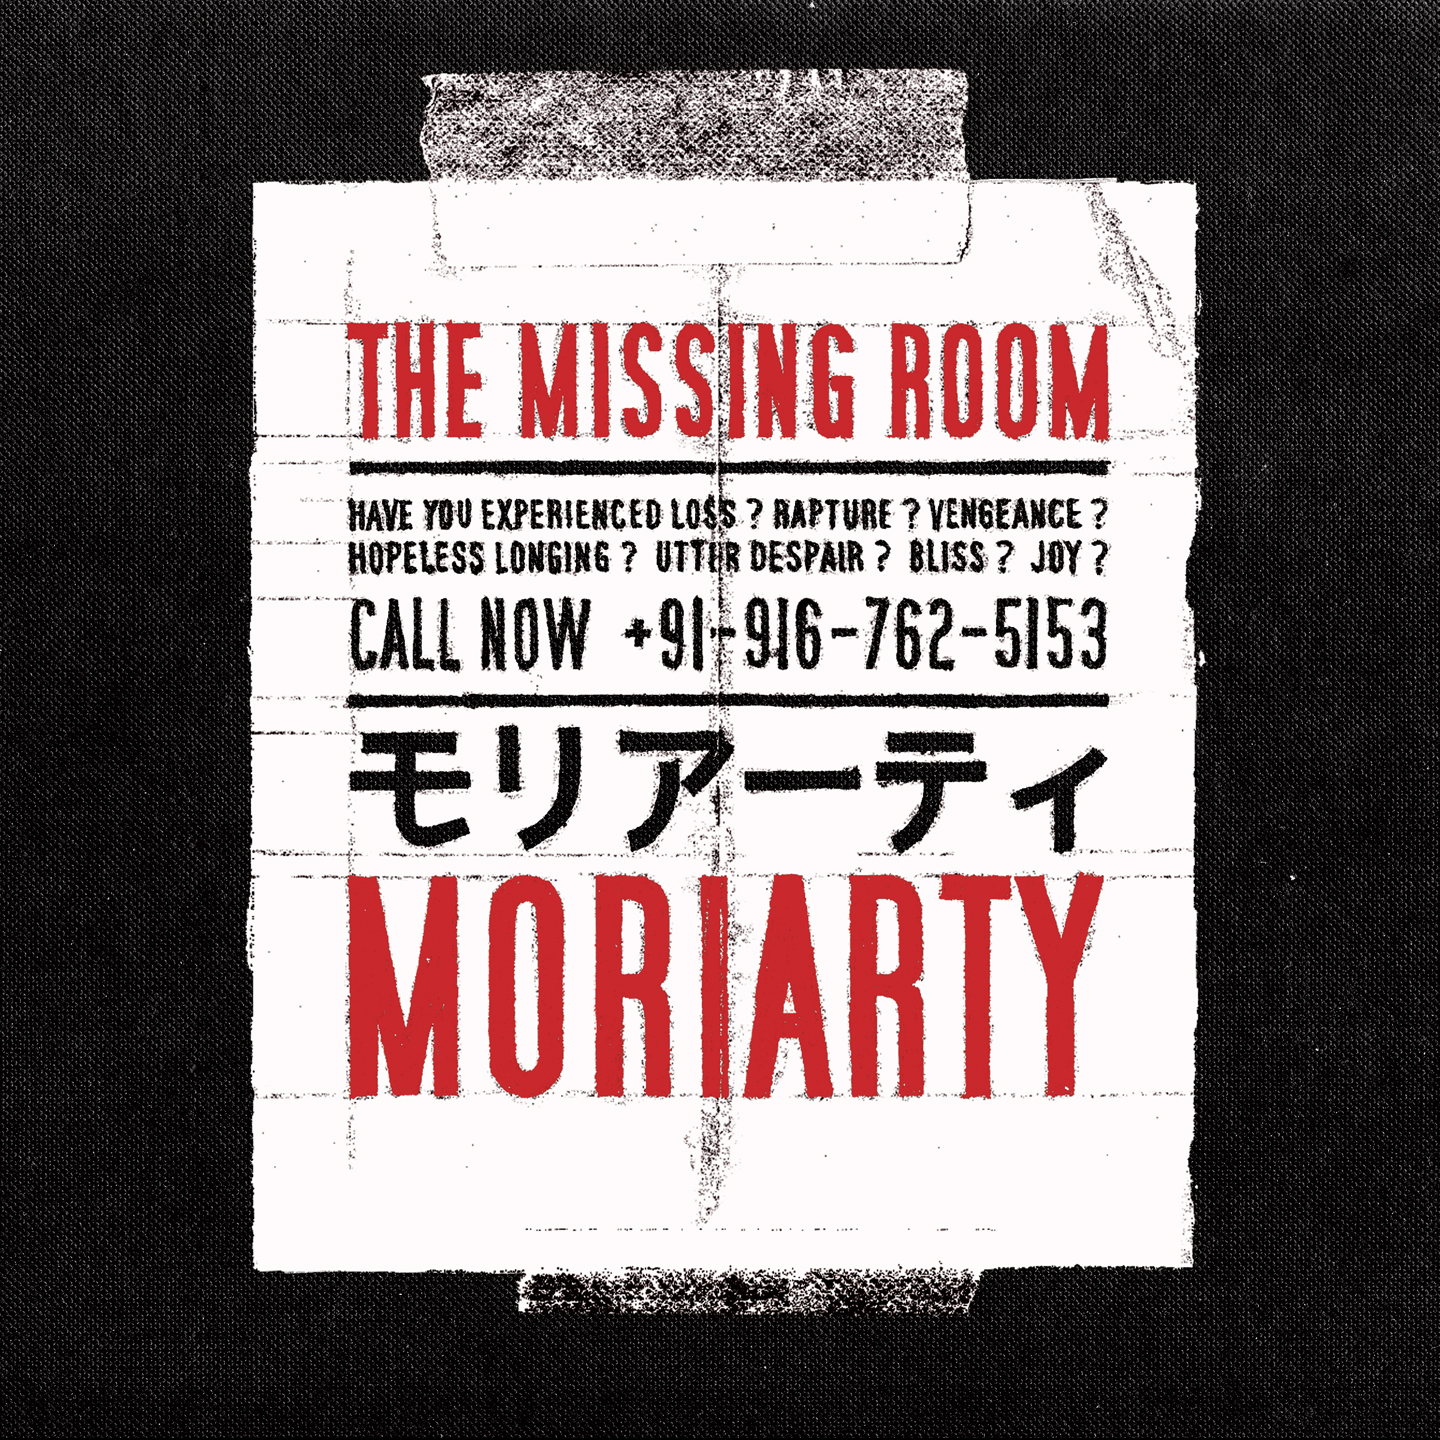 Moriarty_The Missing Room_cover-TISSU